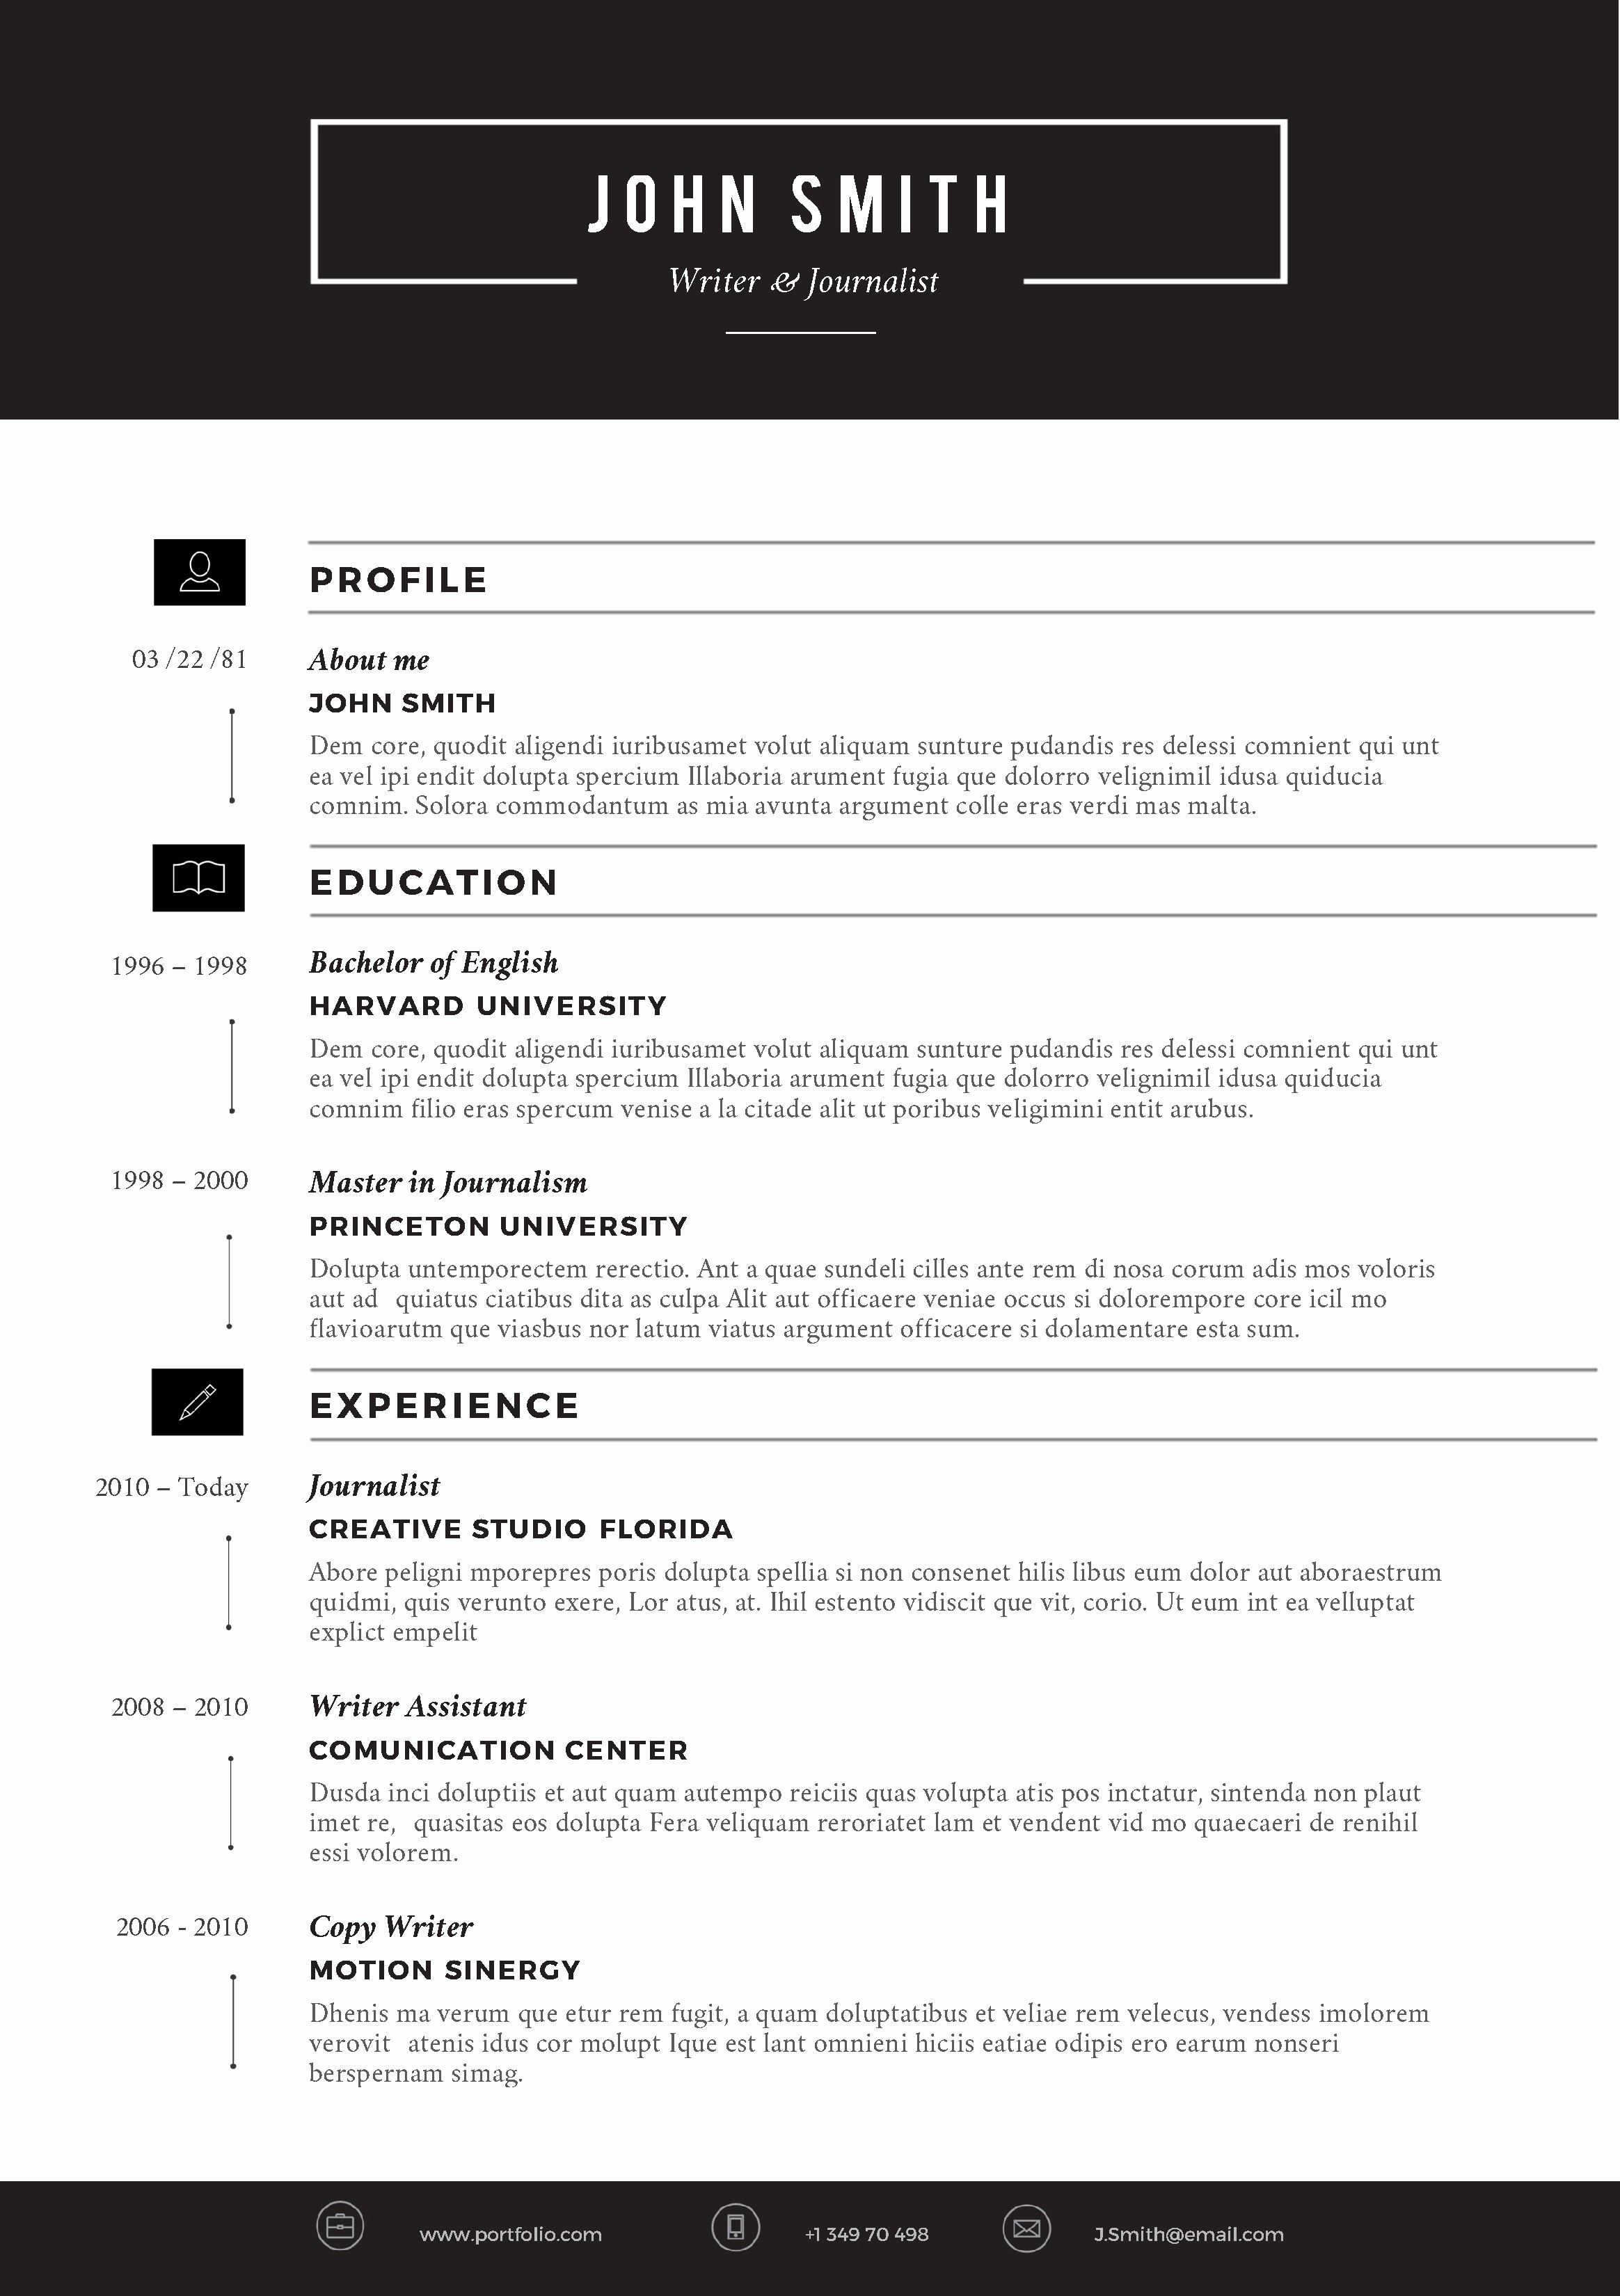 Microsoft Office Word Resume Template Best Of Fice Resume Template Cover Letter Portfolio